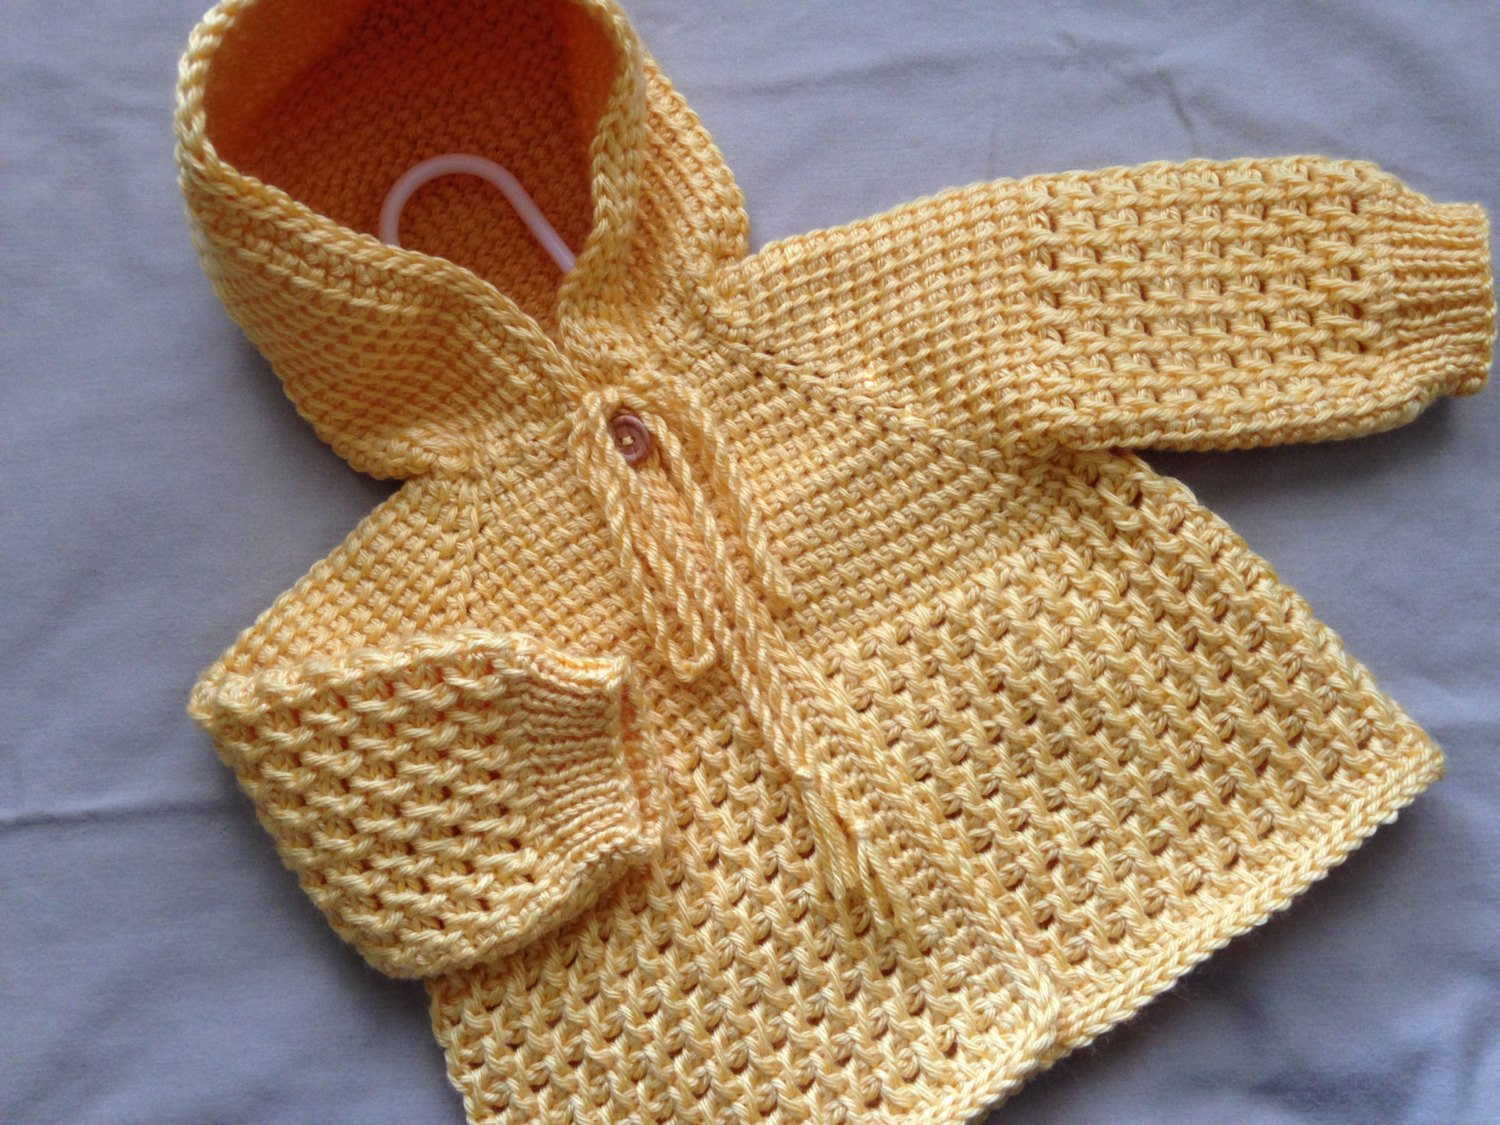 Crochet Baby Sweater Fresh Yellow Crochet Baby Sweater with Hood Tunisian Crochet Of Charming 44 Images Crochet Baby Sweater